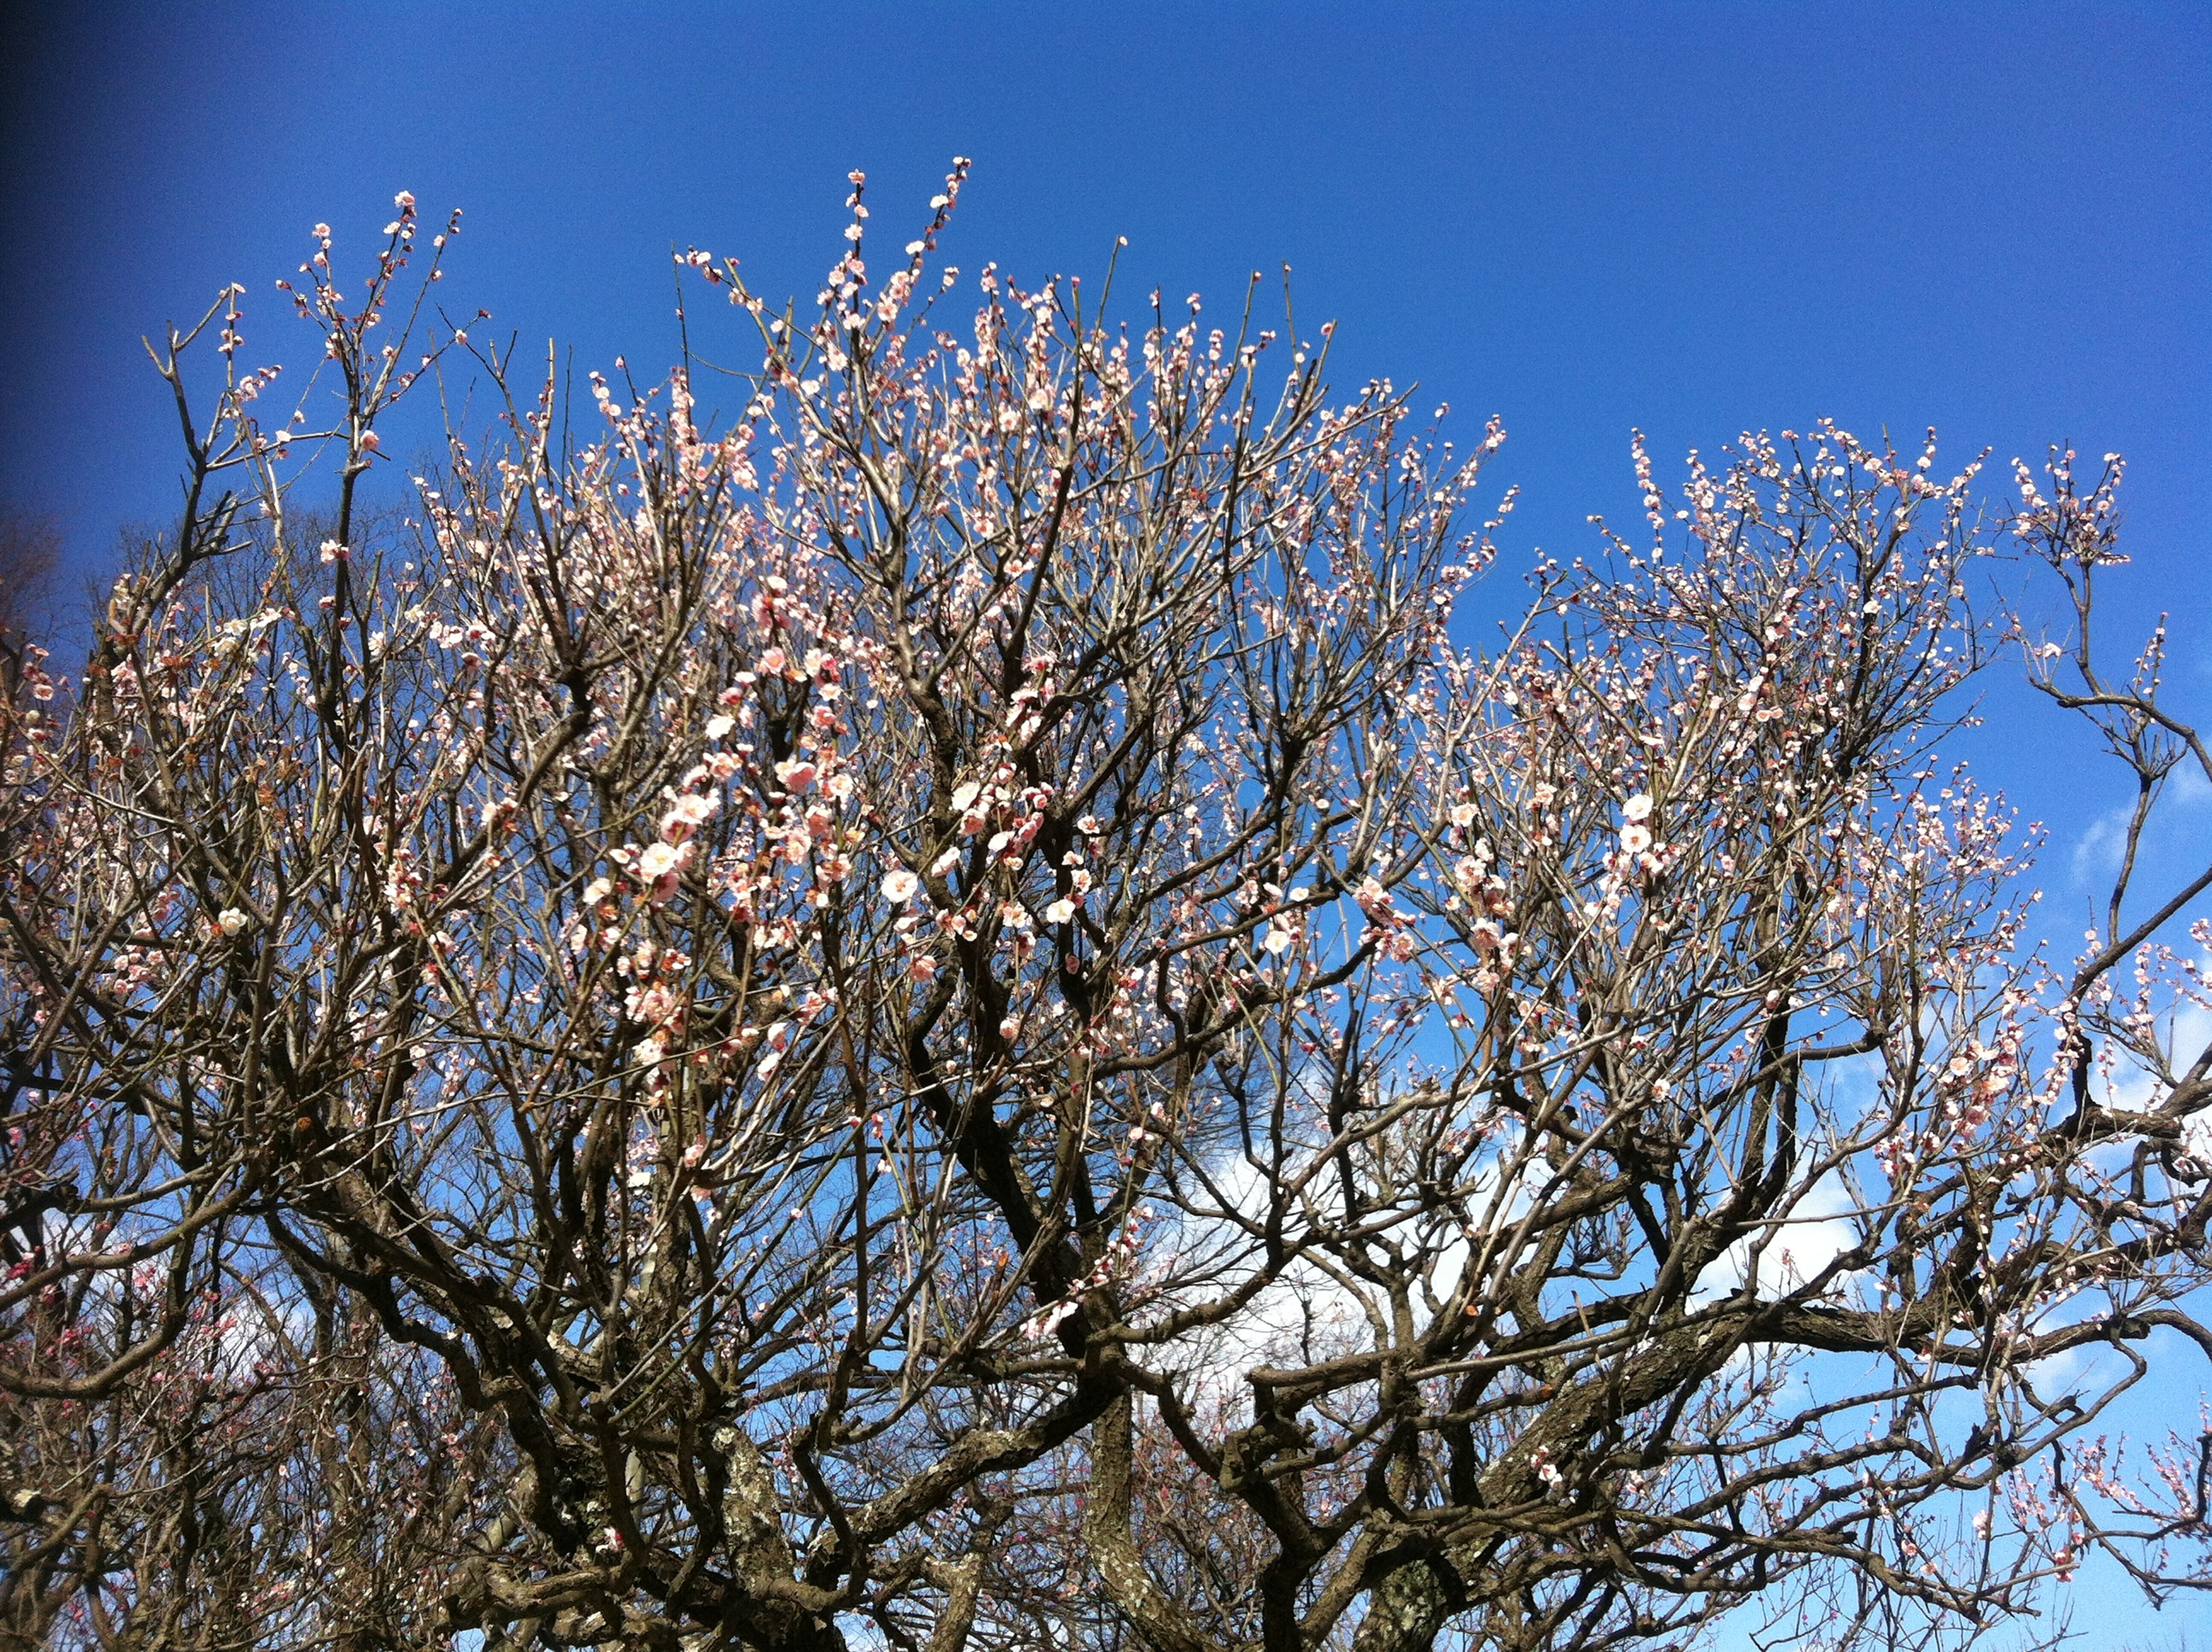 low angle view, branch, tree, clear sky, blue, growth, nature, beauty in nature, sky, bare tree, flower, tranquility, day, outdoors, high section, freshness, no people, sunlight, blossom, scenics